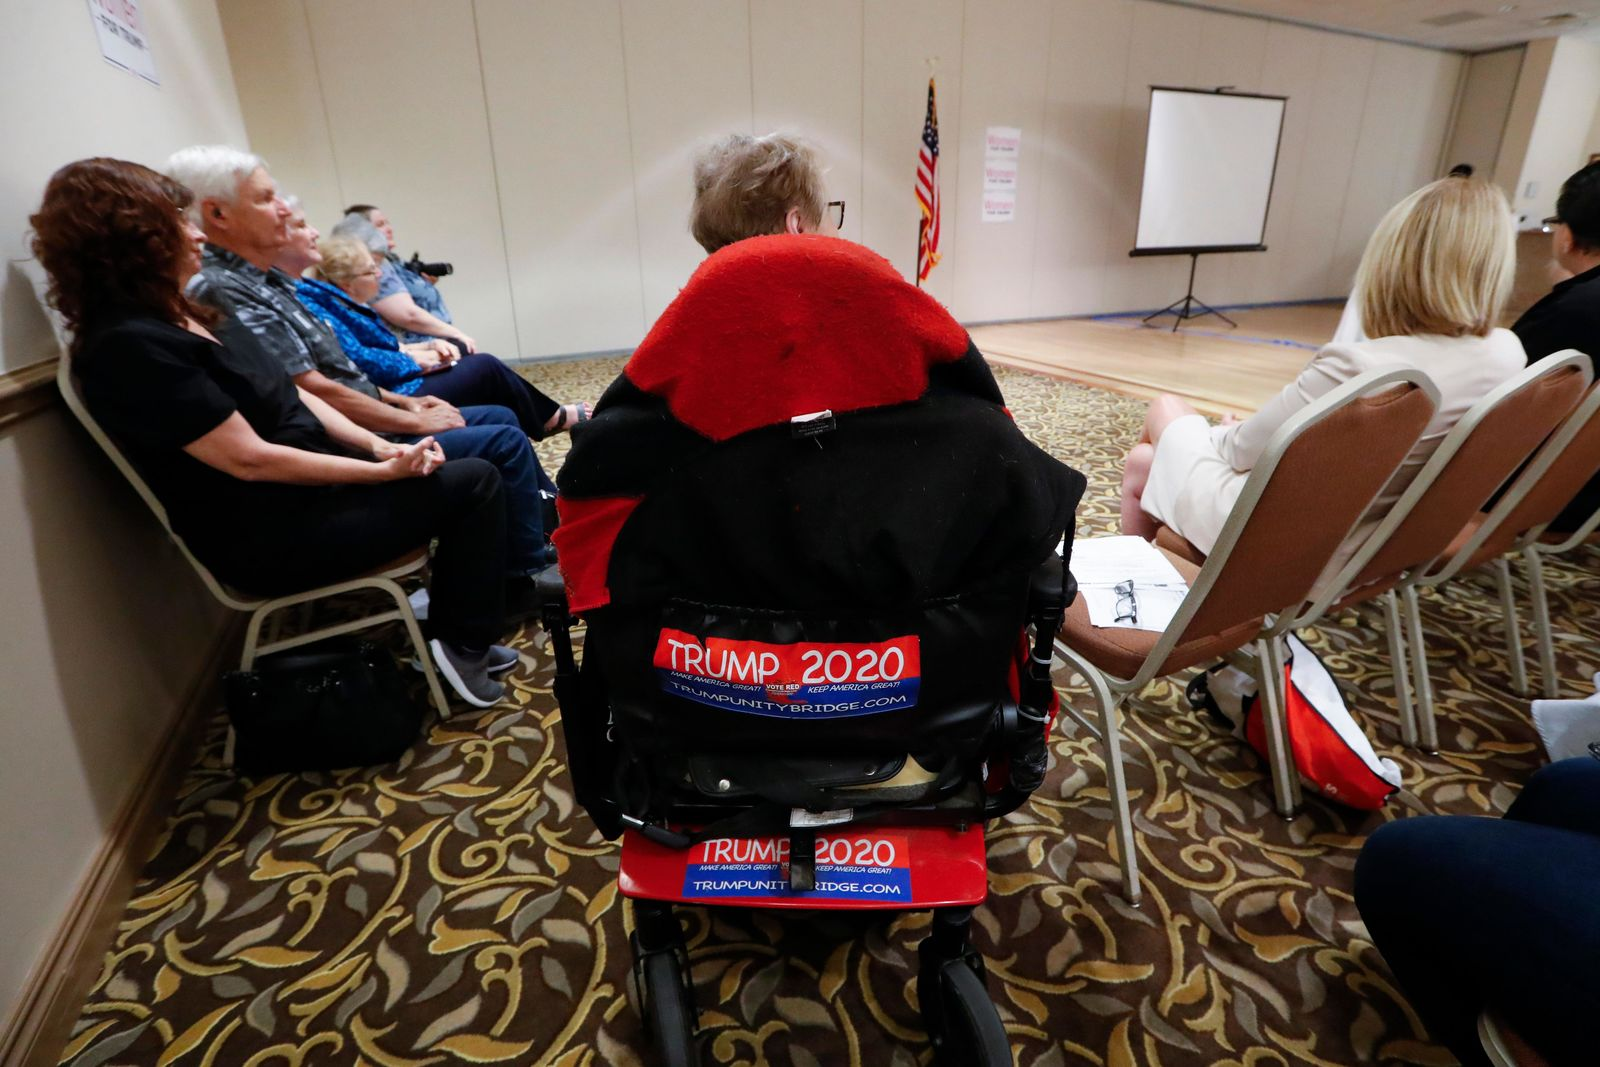 Trump 2020 stickers are shown on a woman's chair during a training session for Women for Trump, An Evening to Empower, in Troy, Mich., Thursday, Aug. 22, 2019. (AP Photo/Paul Sancya)